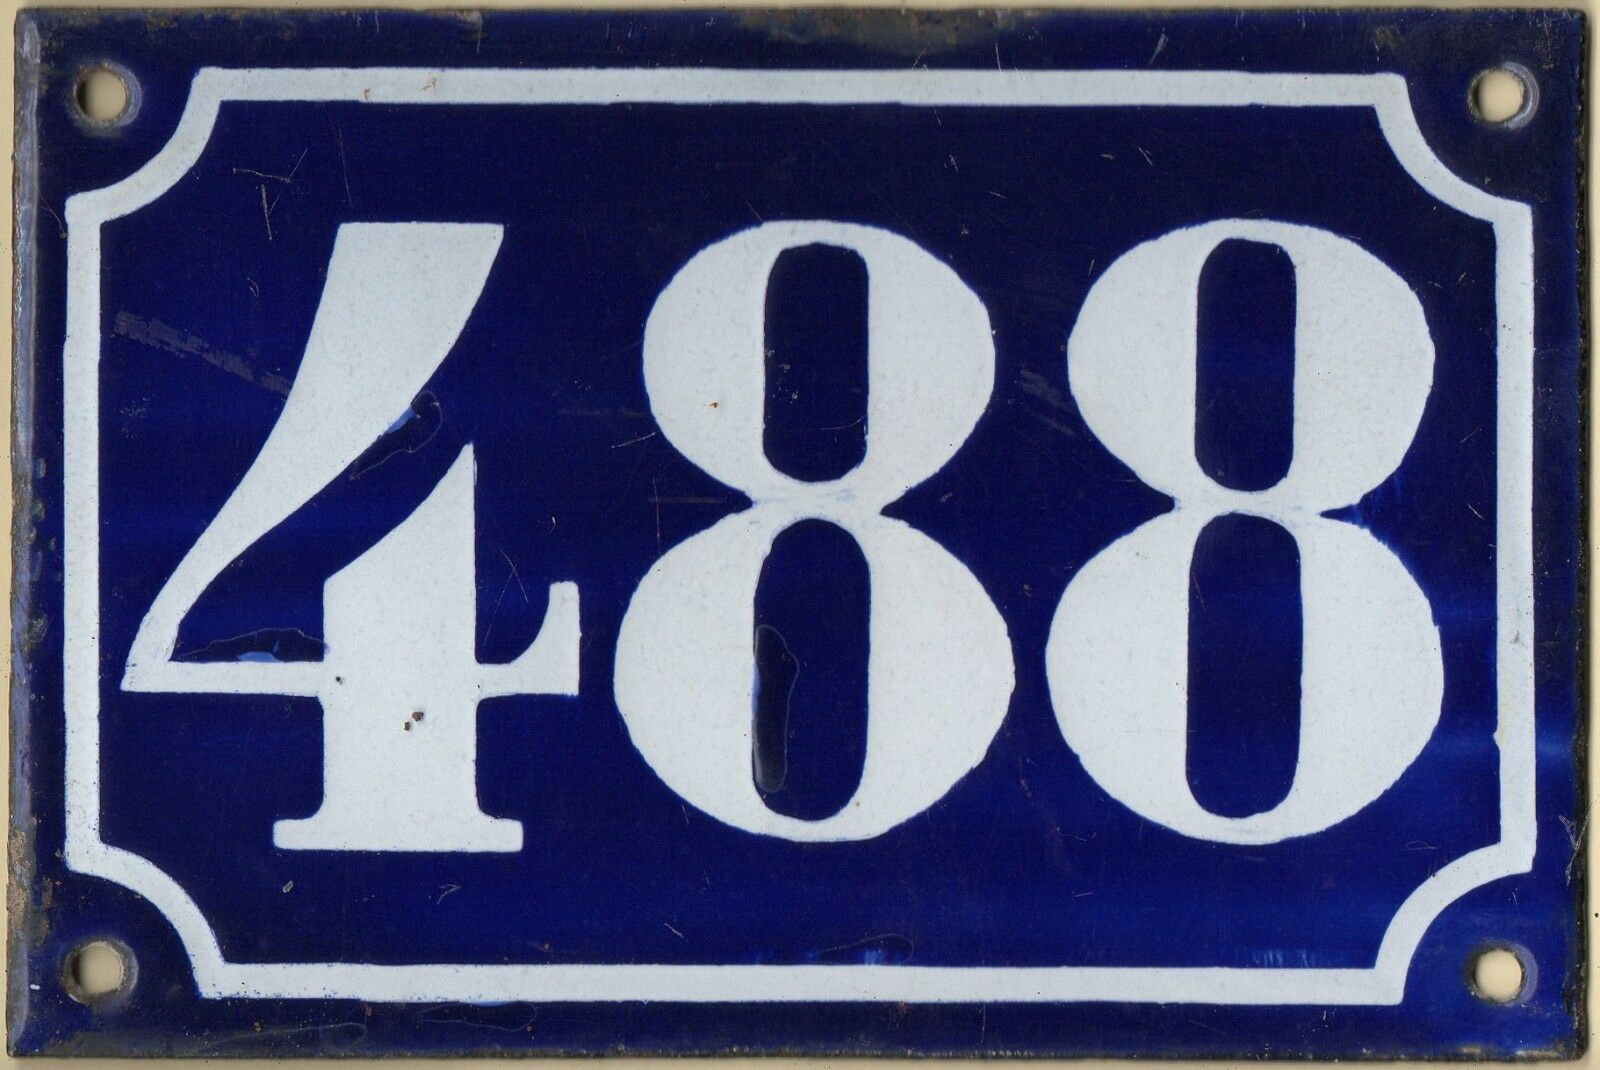 Old blue French house number 488 door gate plate plaque enamel metal sign c1900